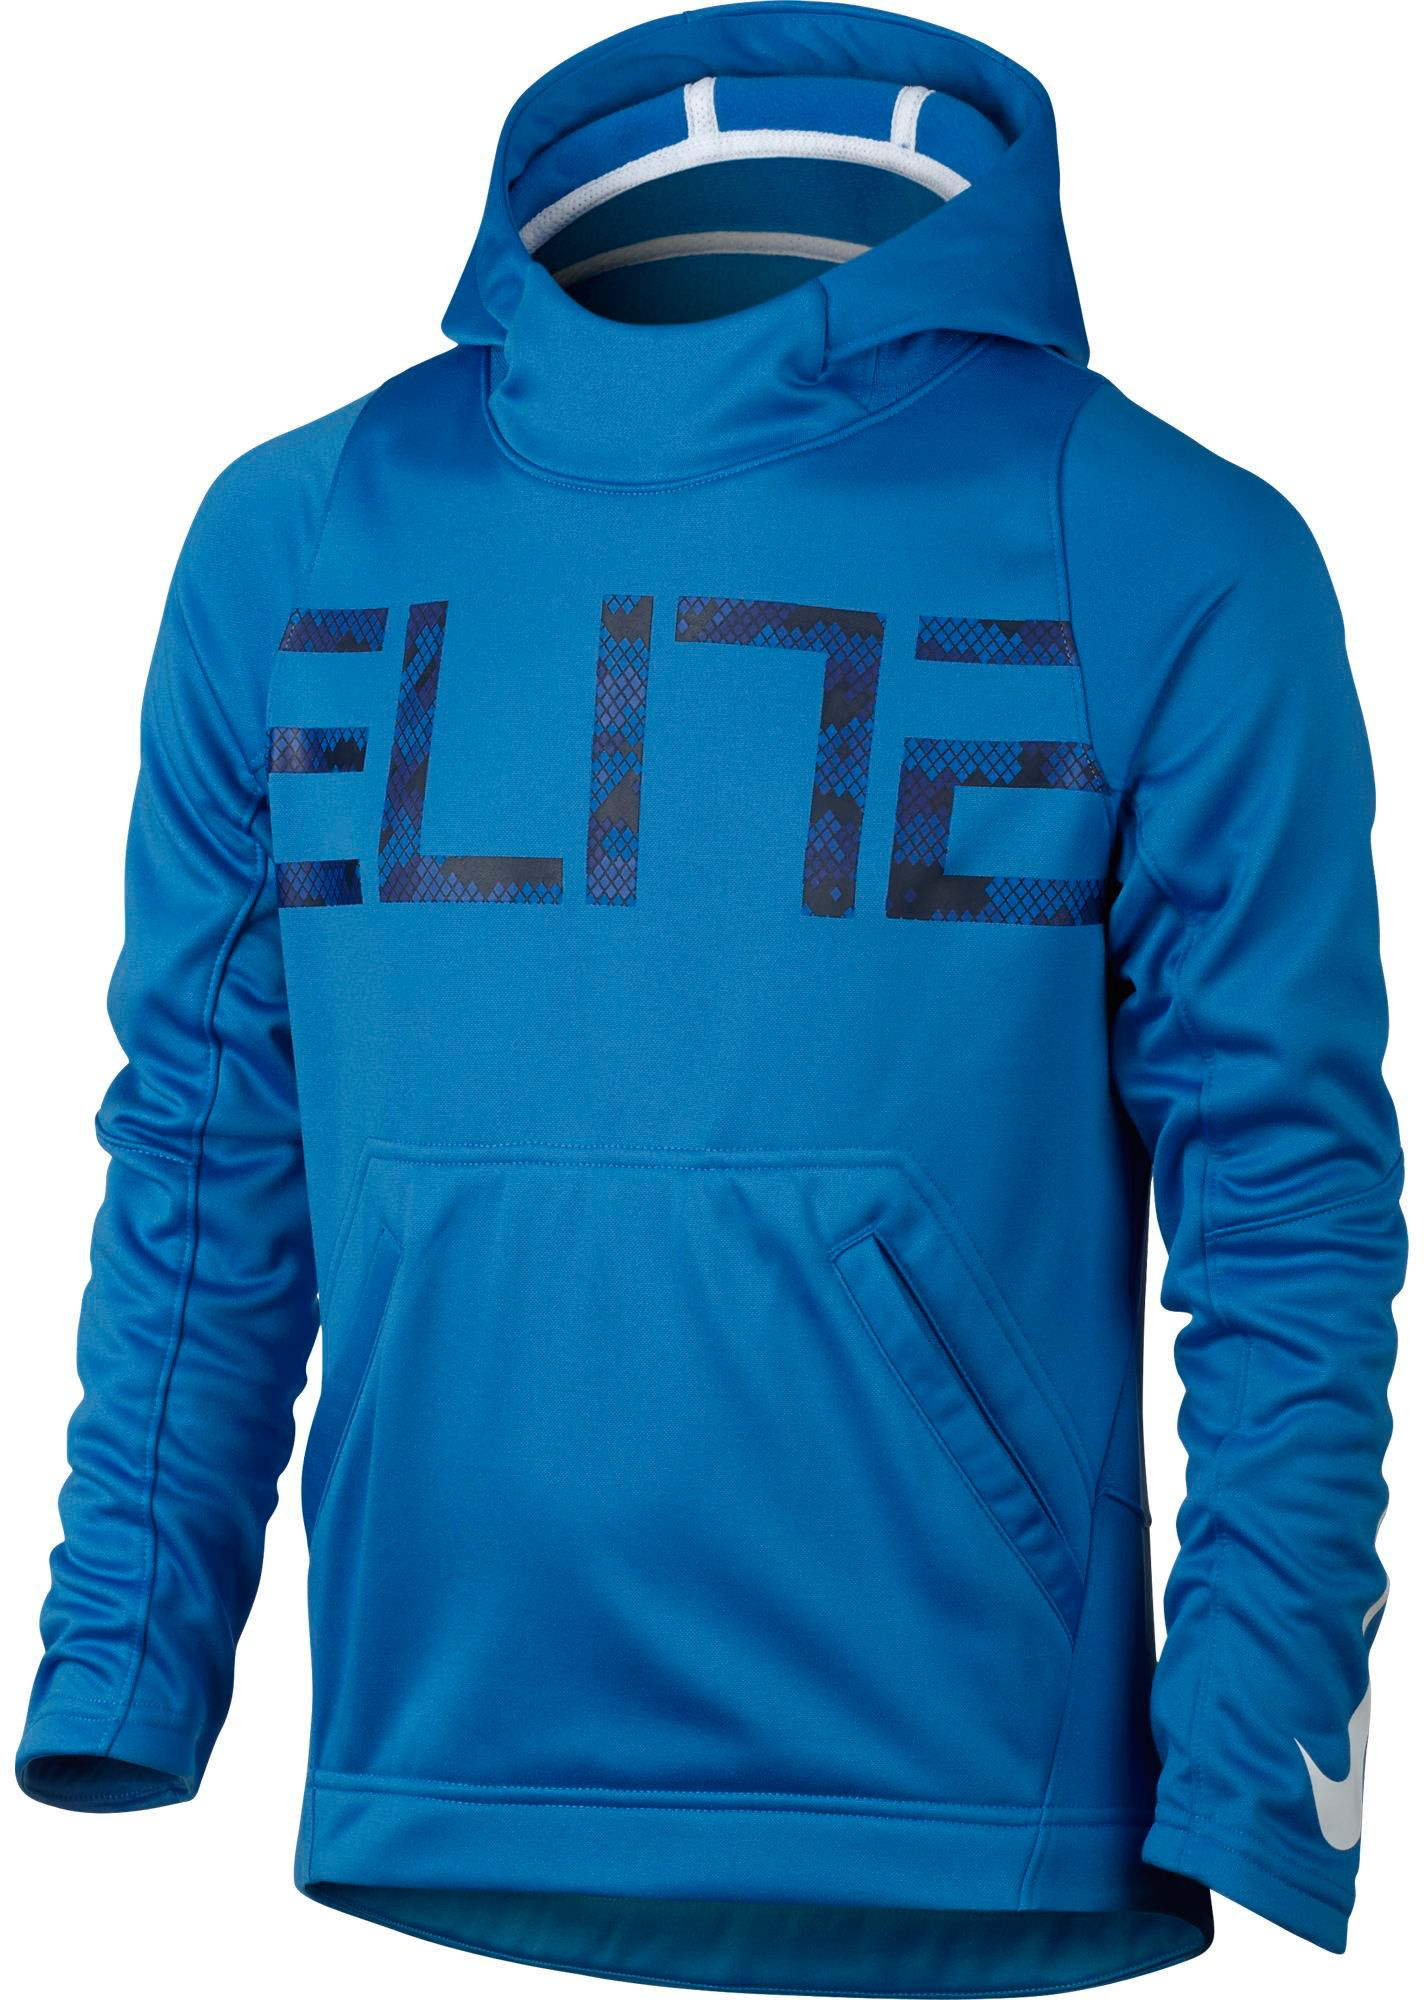 Boys Nike Elite Basketball Hoodie | Provincial Archives of ...